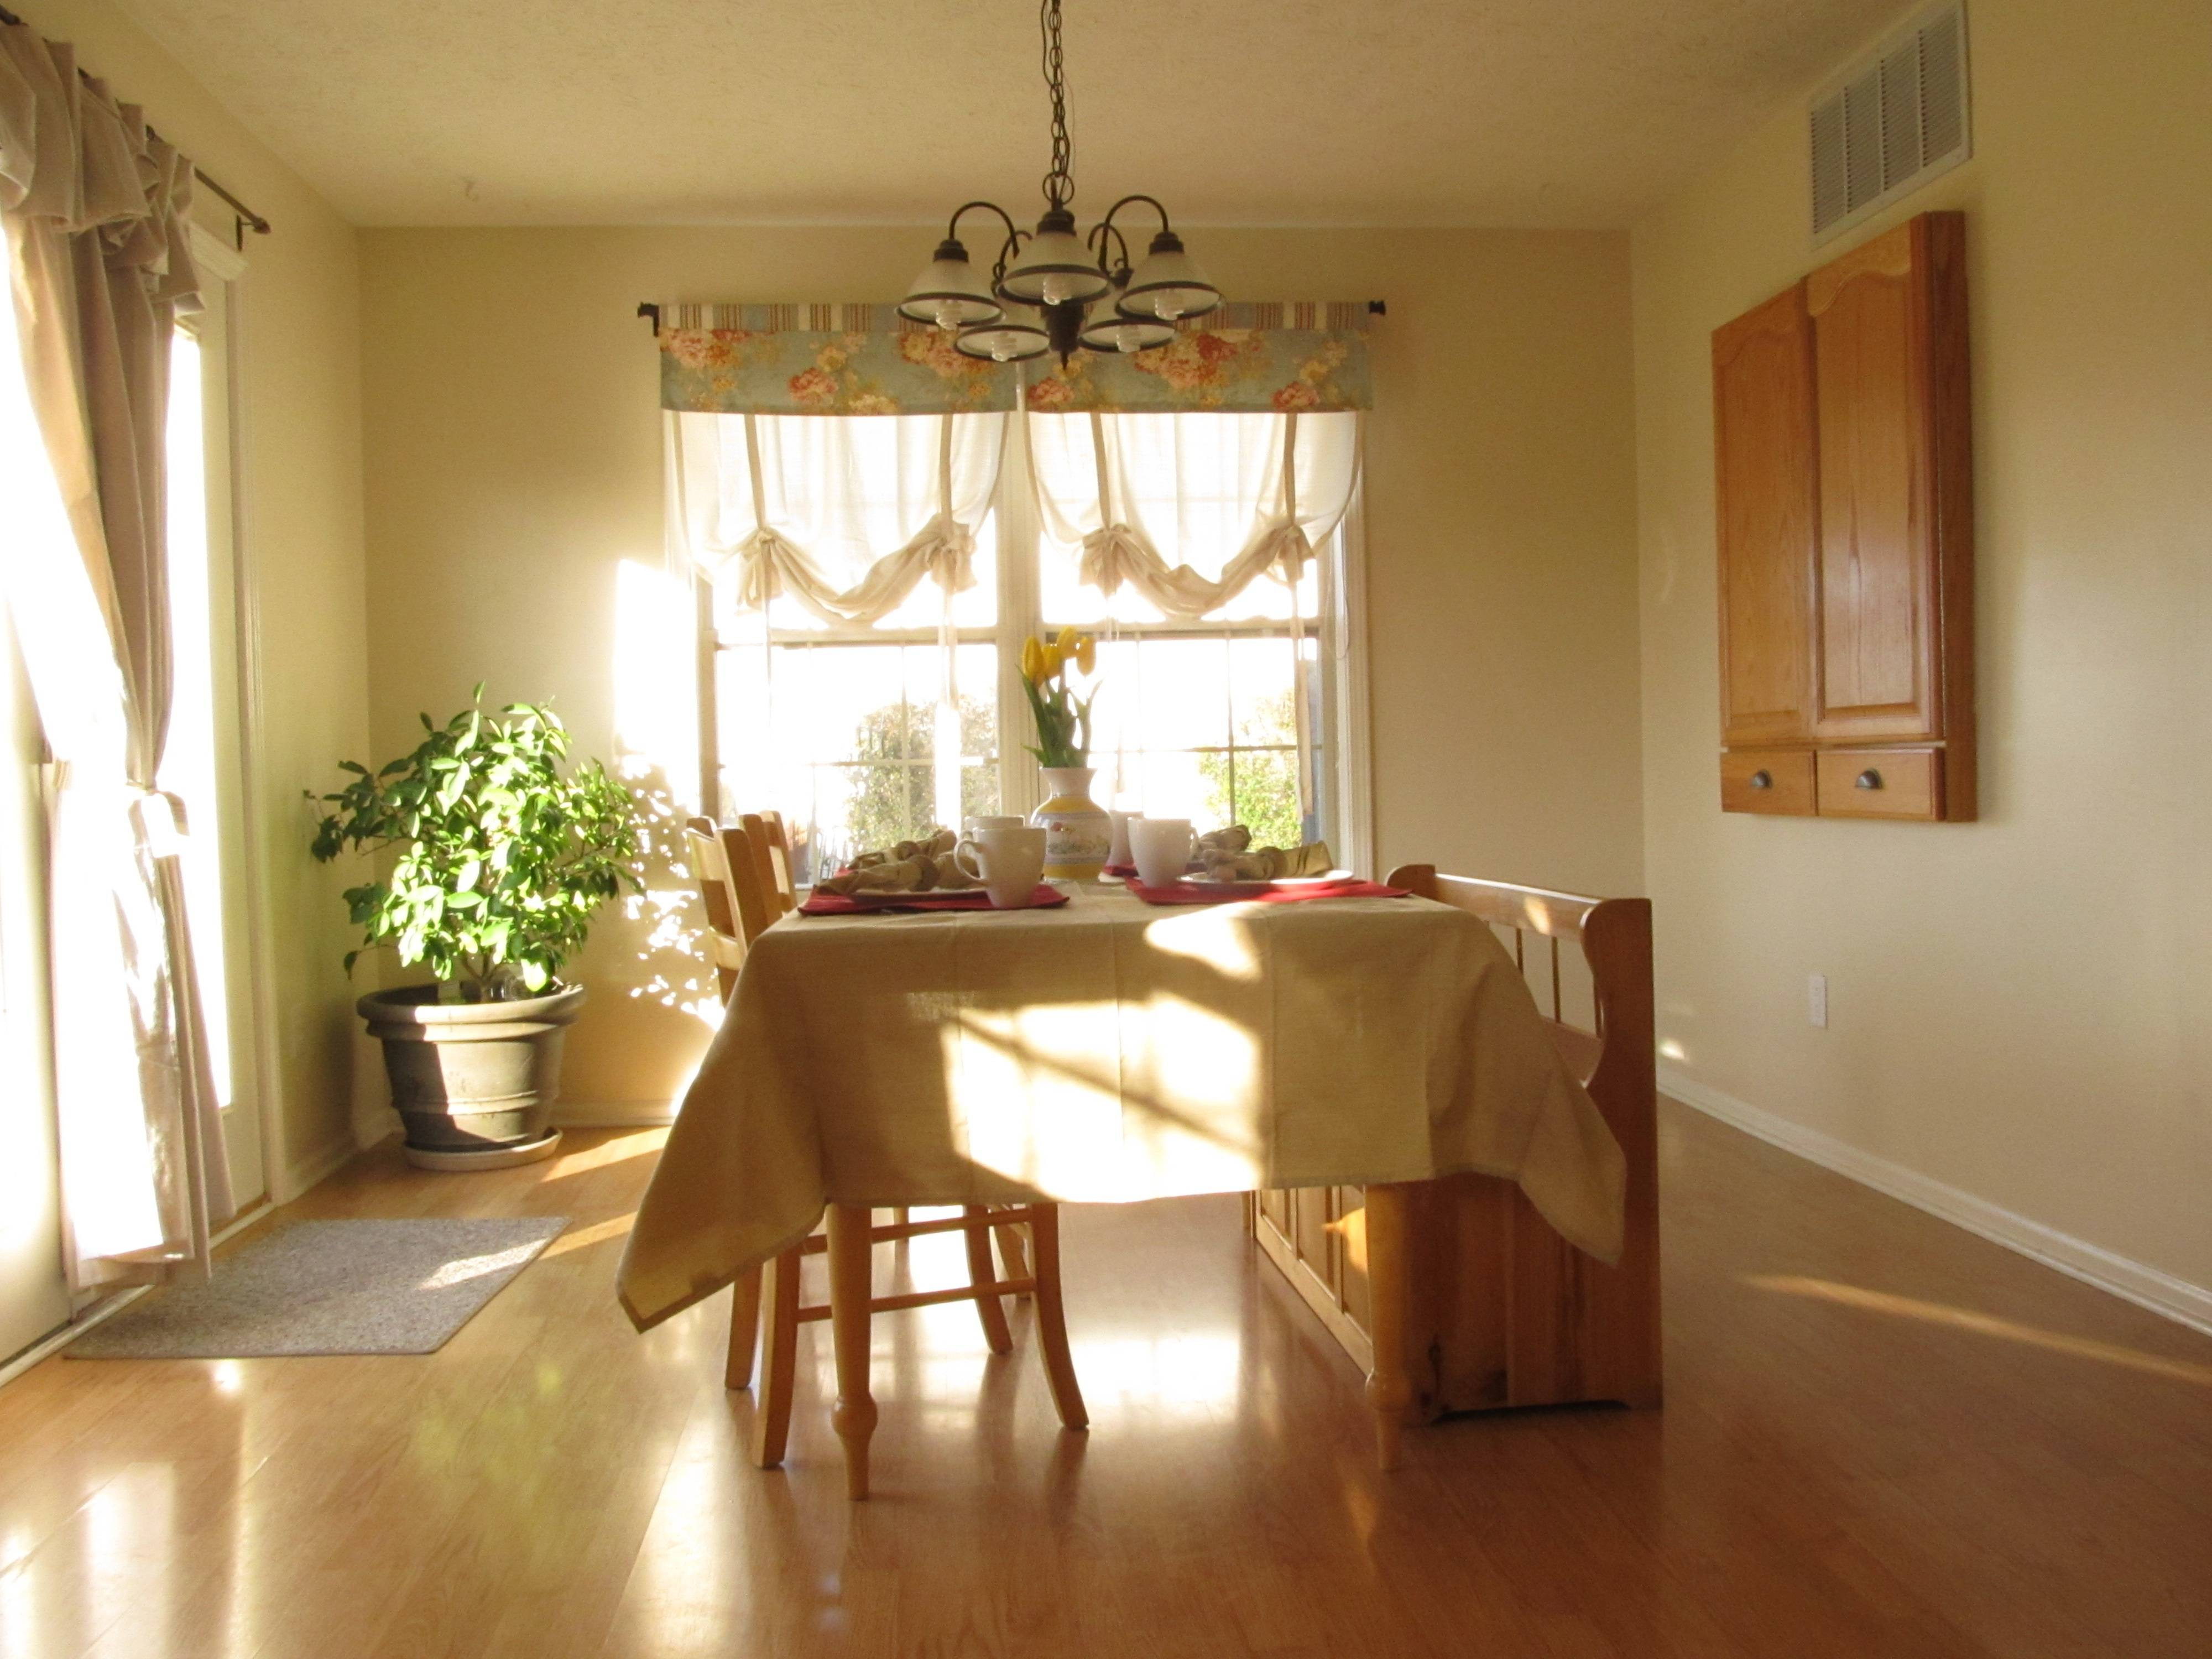 Walls Behr Antique White Made Dining Space Feel Larger